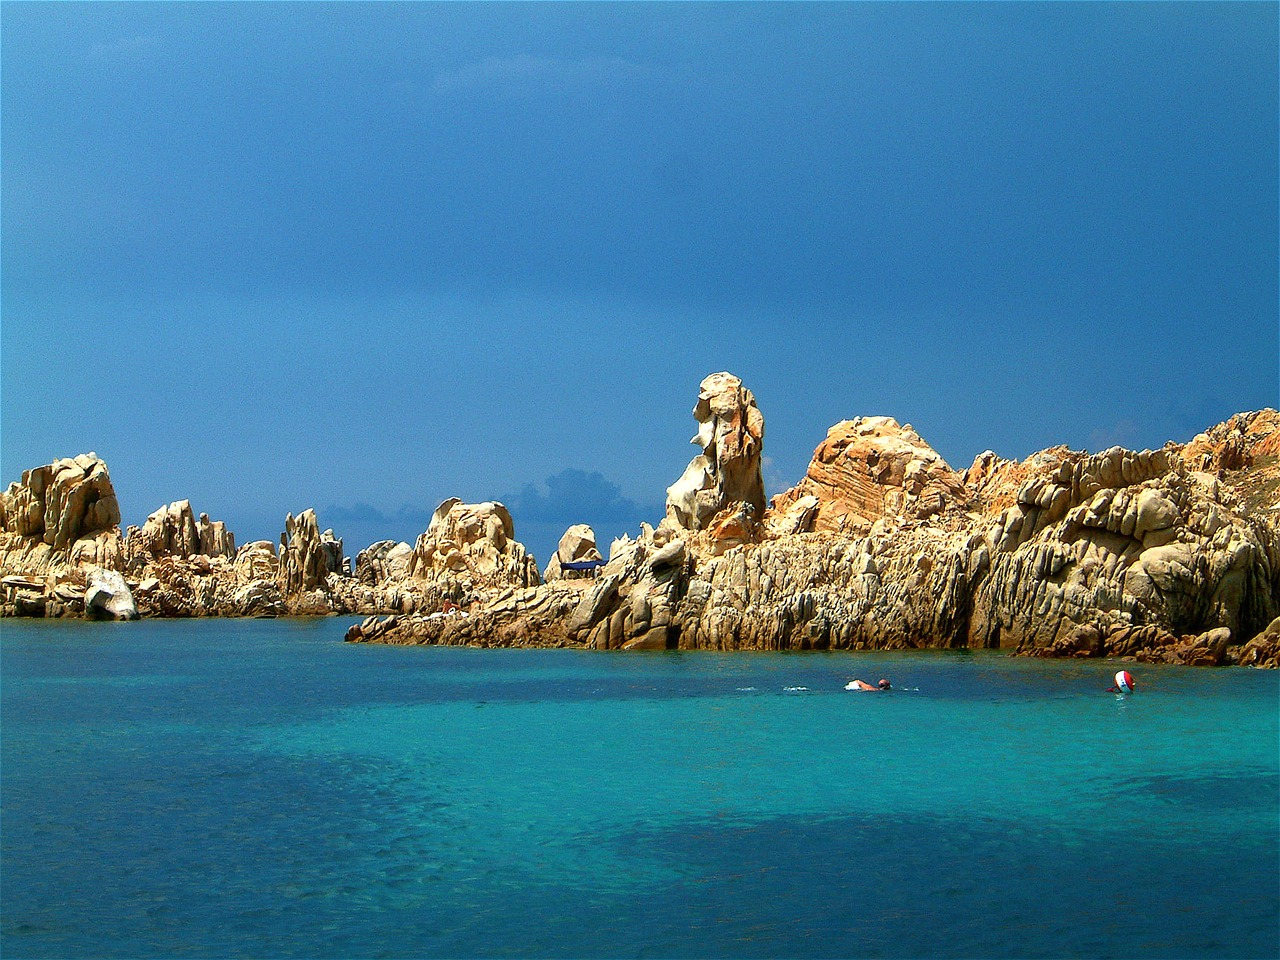 Rocks near Costa Smerelda in Sardinia